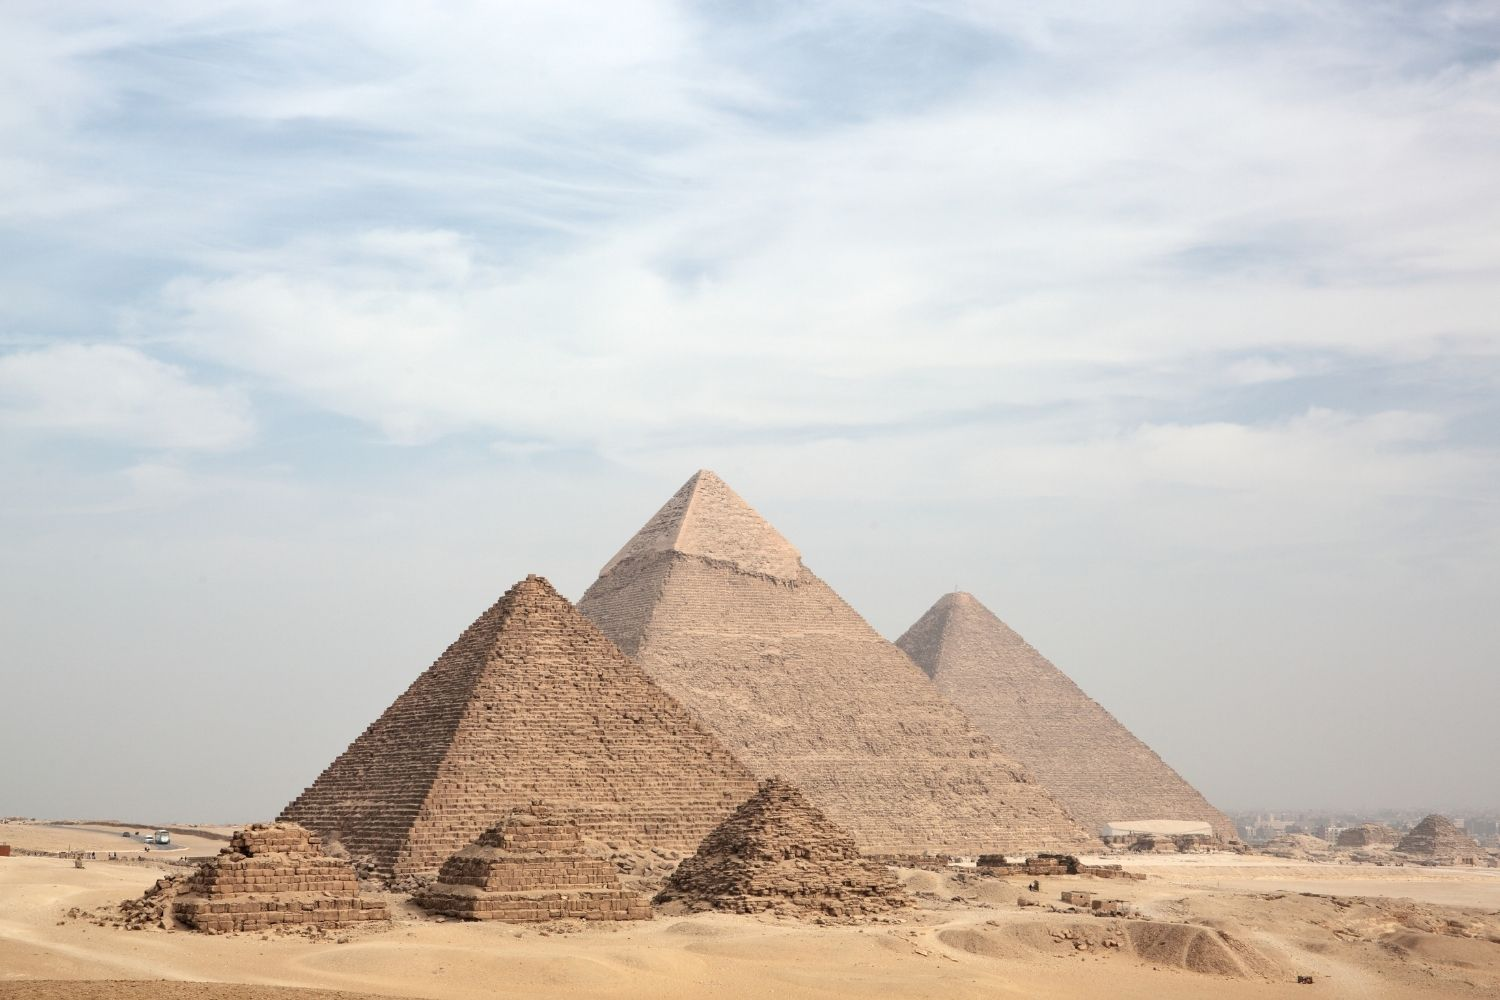 Panoramic view of the three pyramids of Giza along with the three satellite pyramids in front.